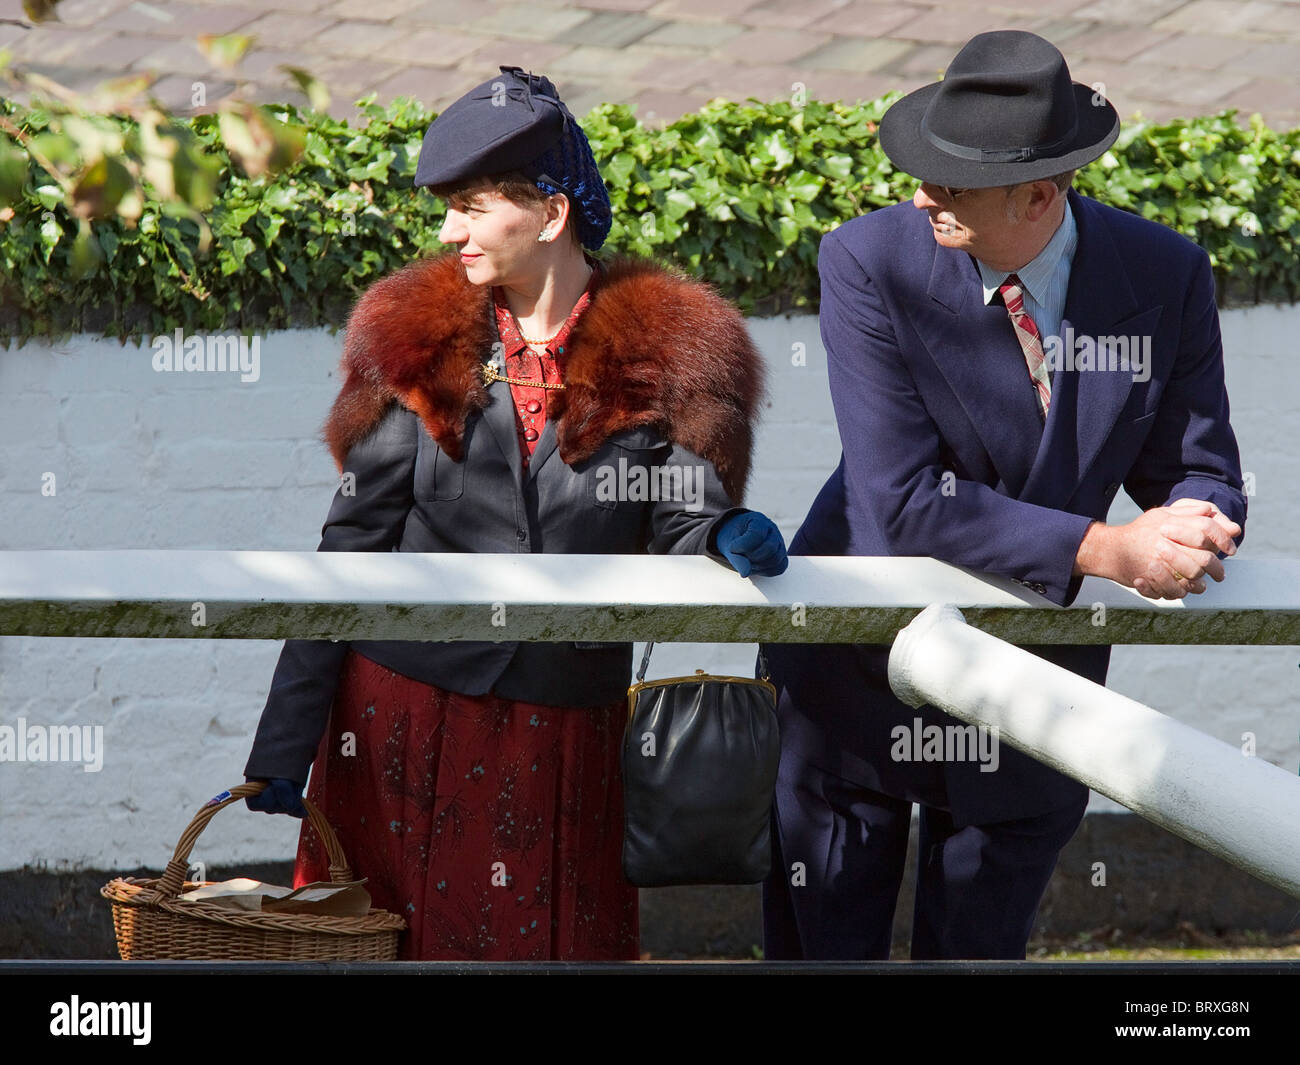 1940 s Man in Trilby   Suit with Lady in Hat with Fur Stoal   Picnic Basket 0860371d721